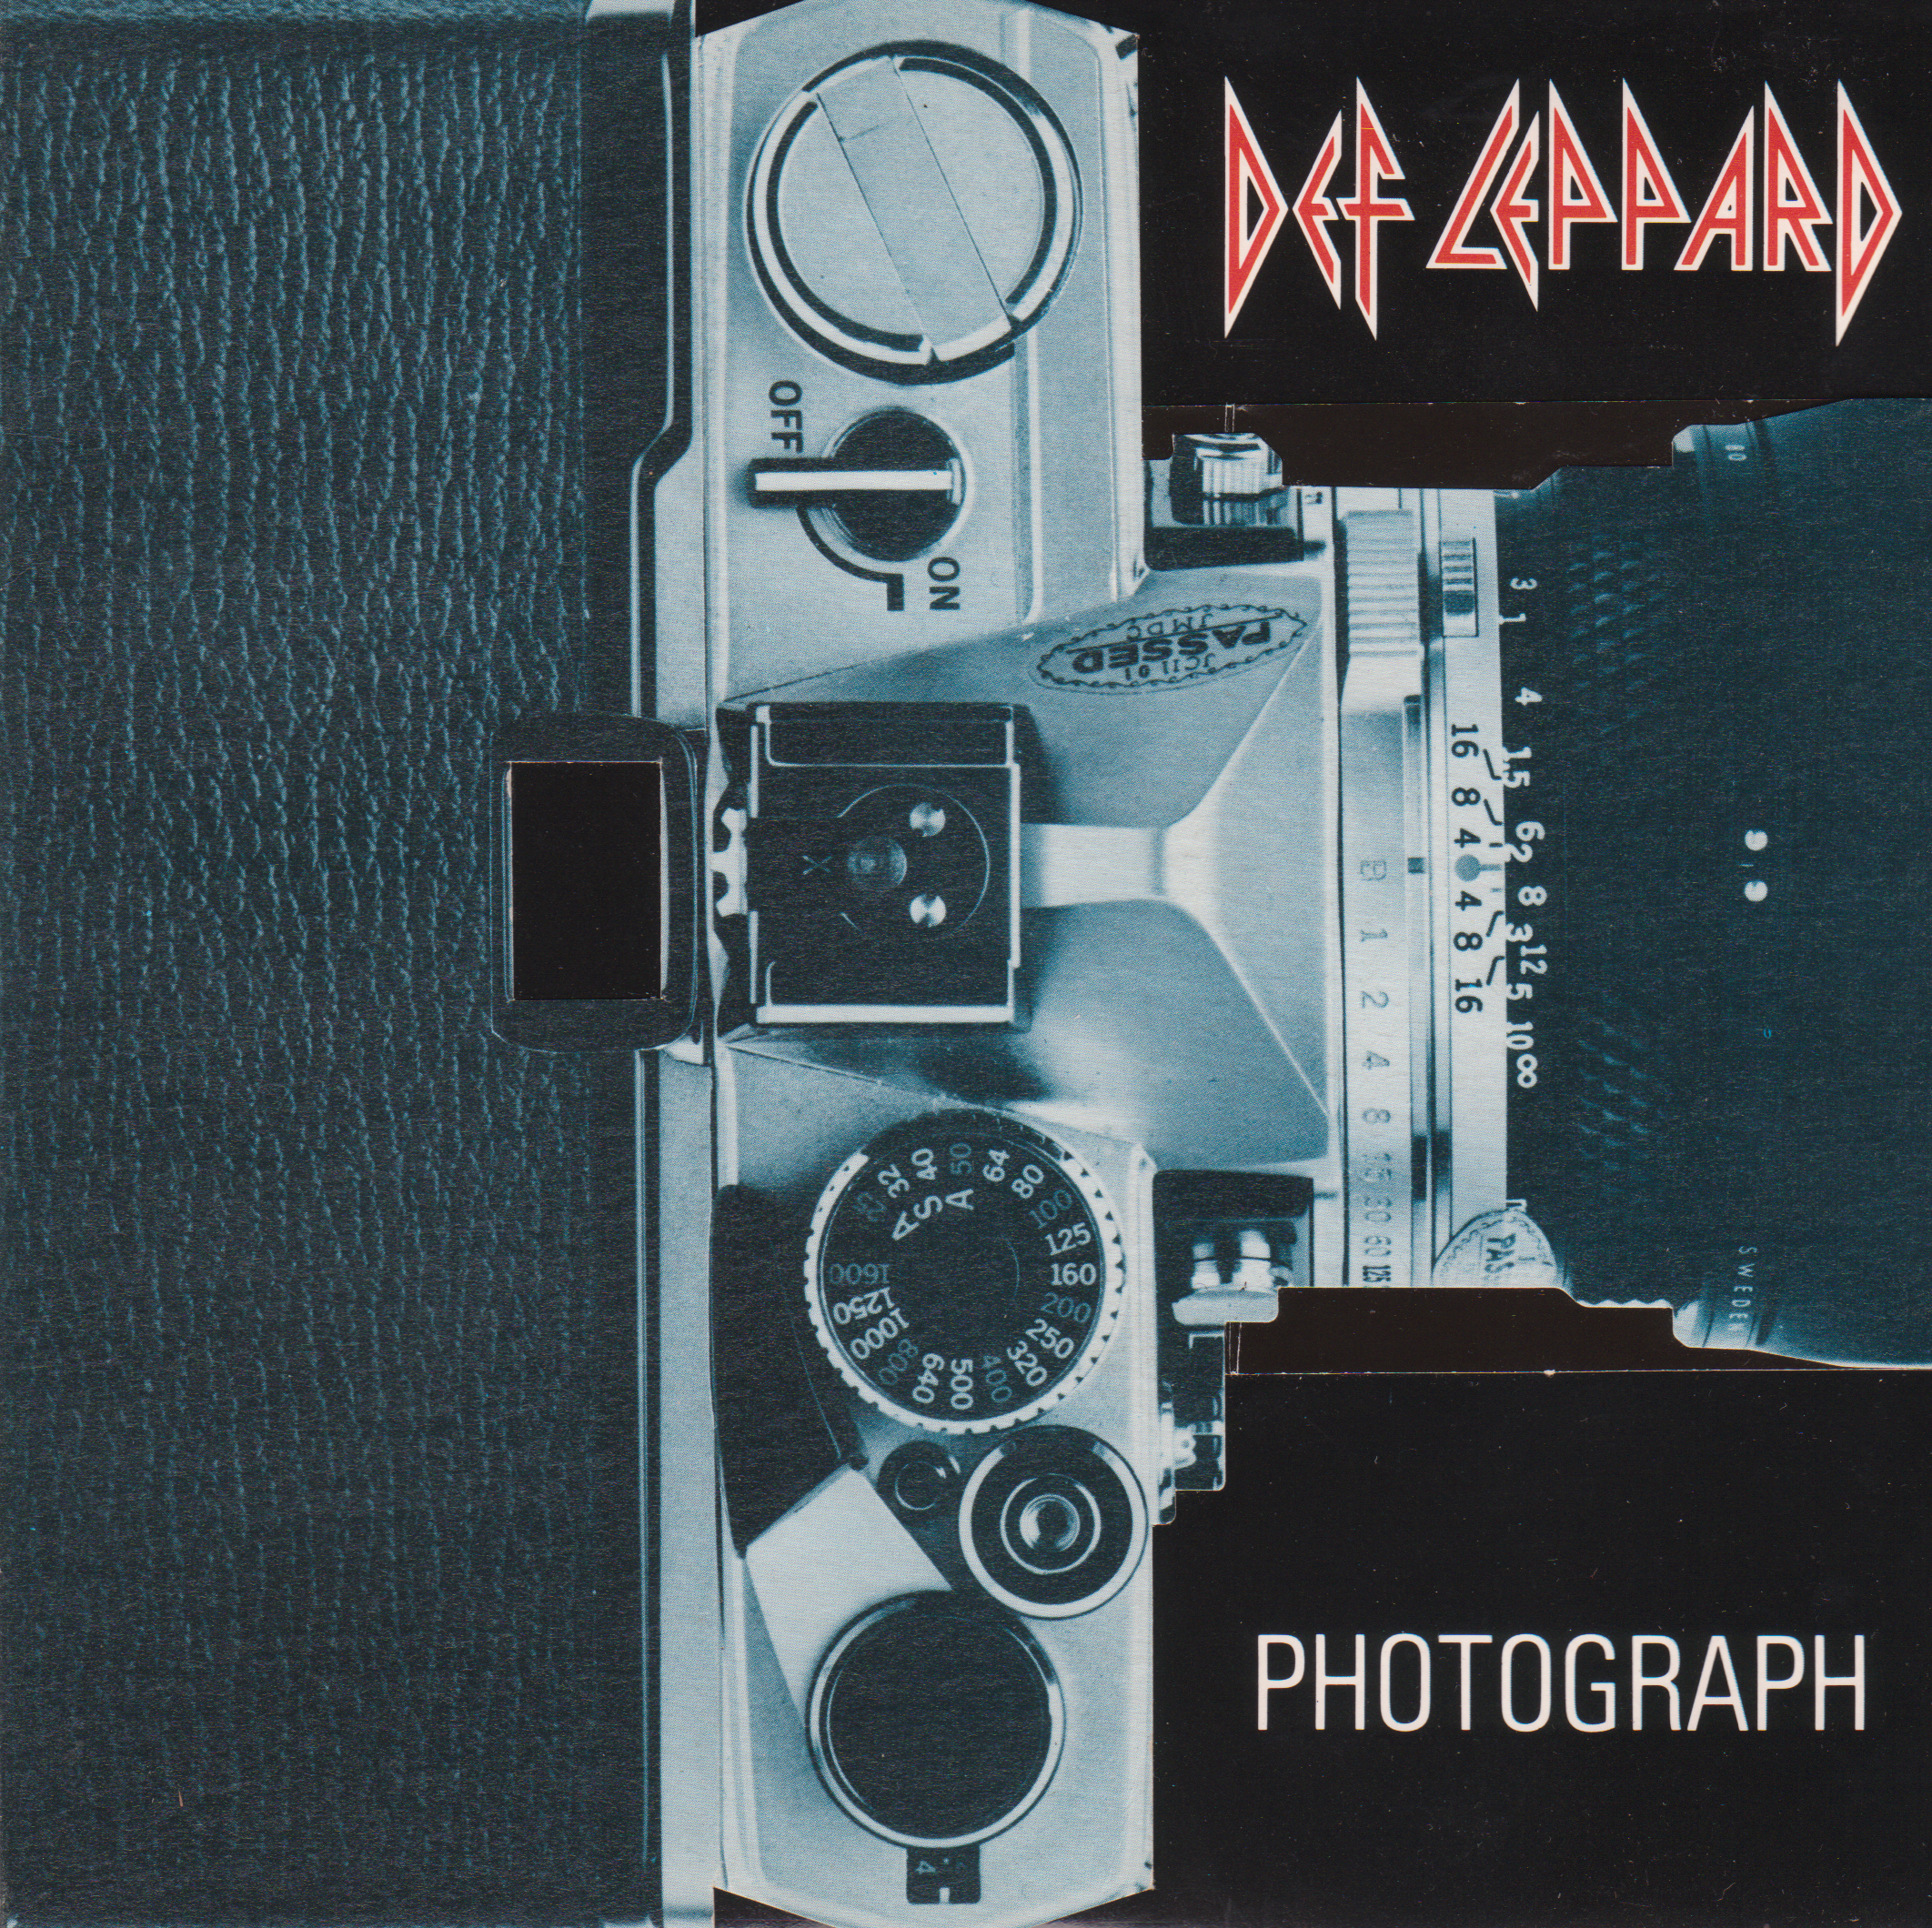 Def Leppard – Photograph | Into the Popvoid